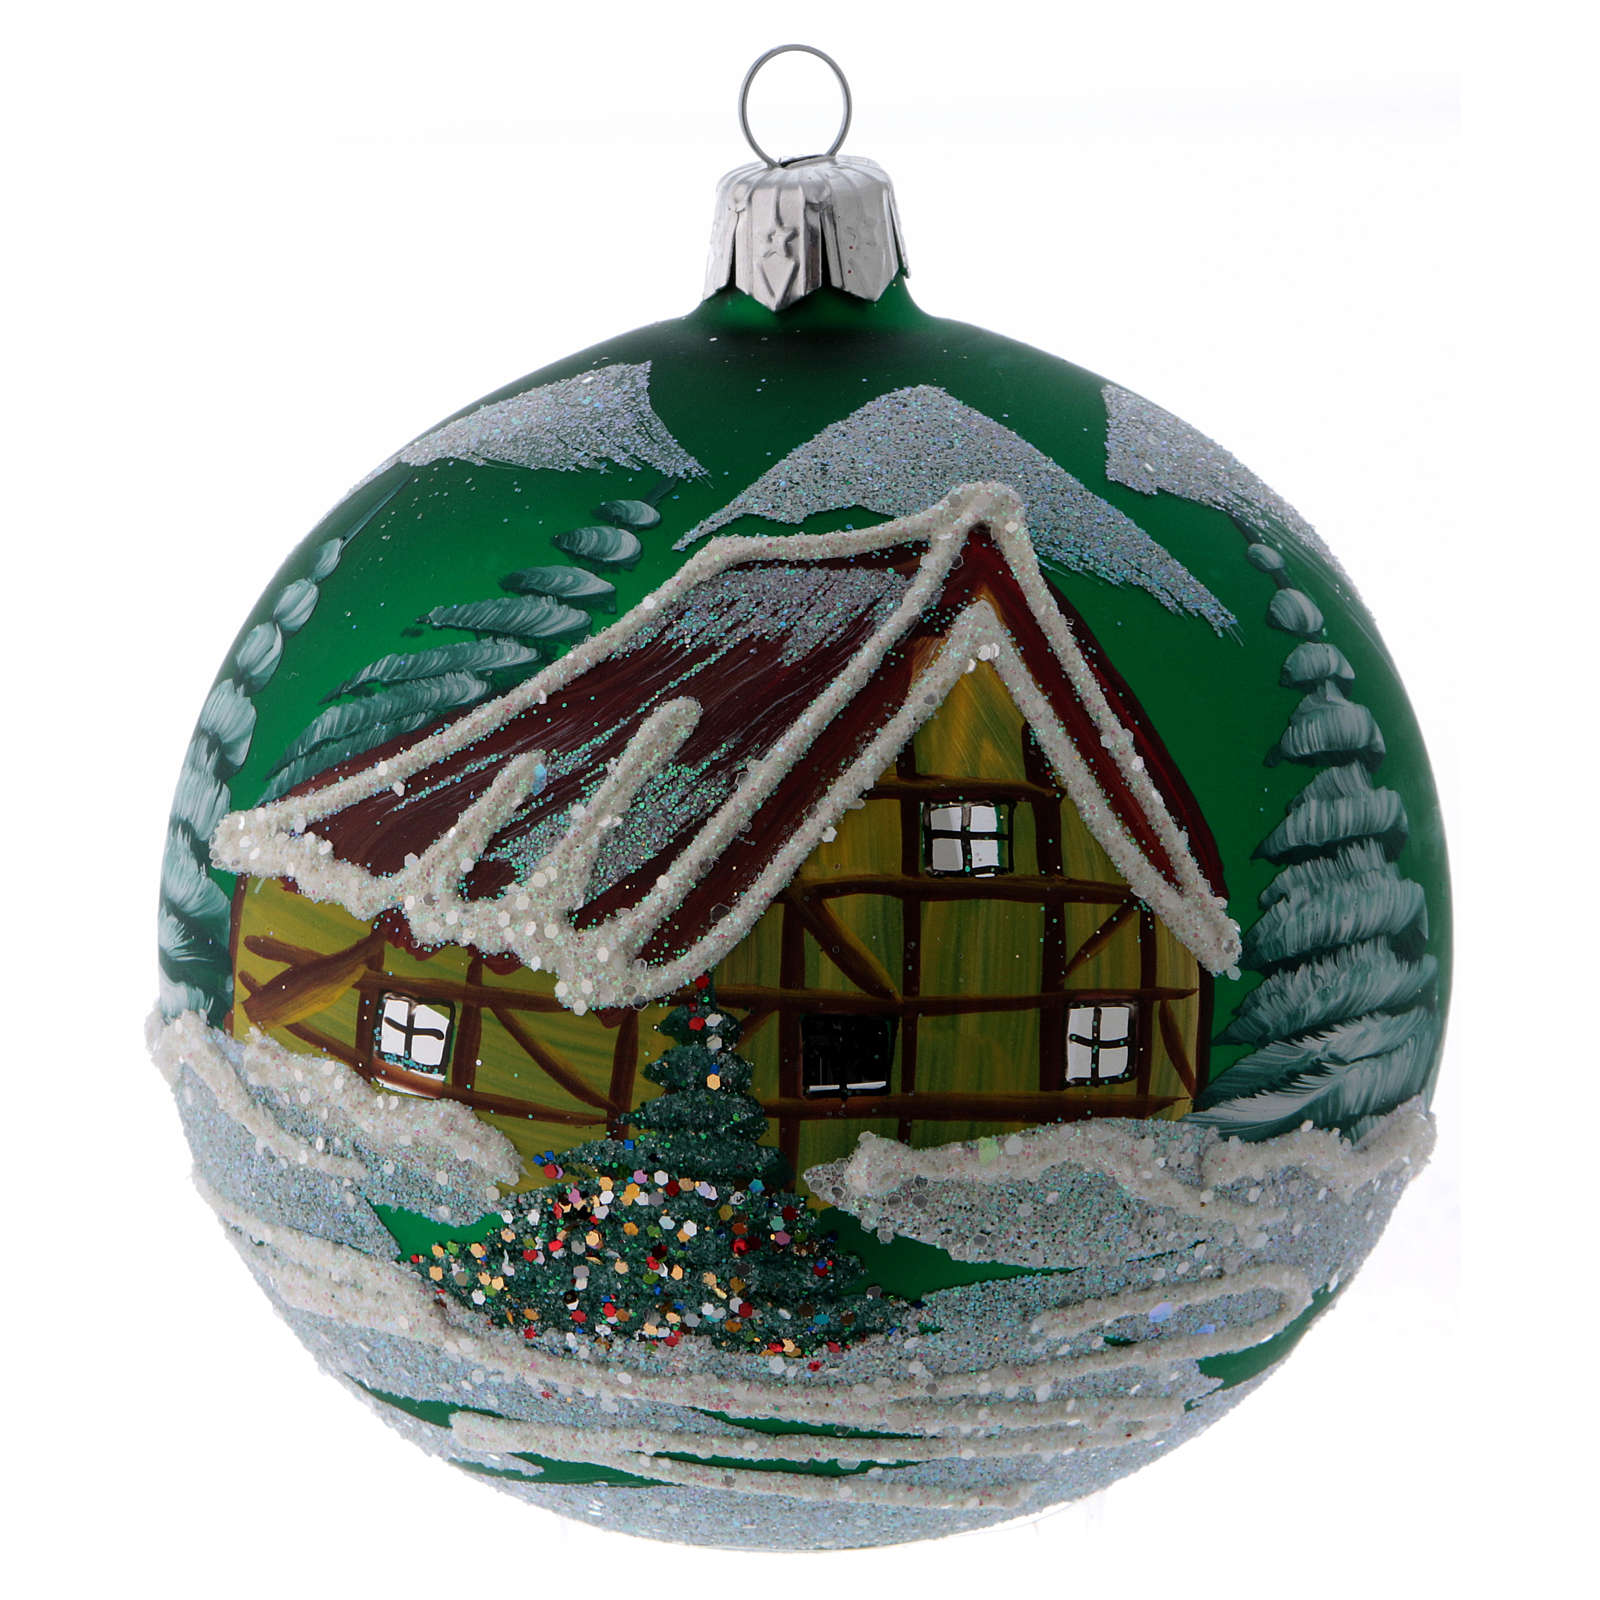 Green glass ball with snowed house design 10 cm 4